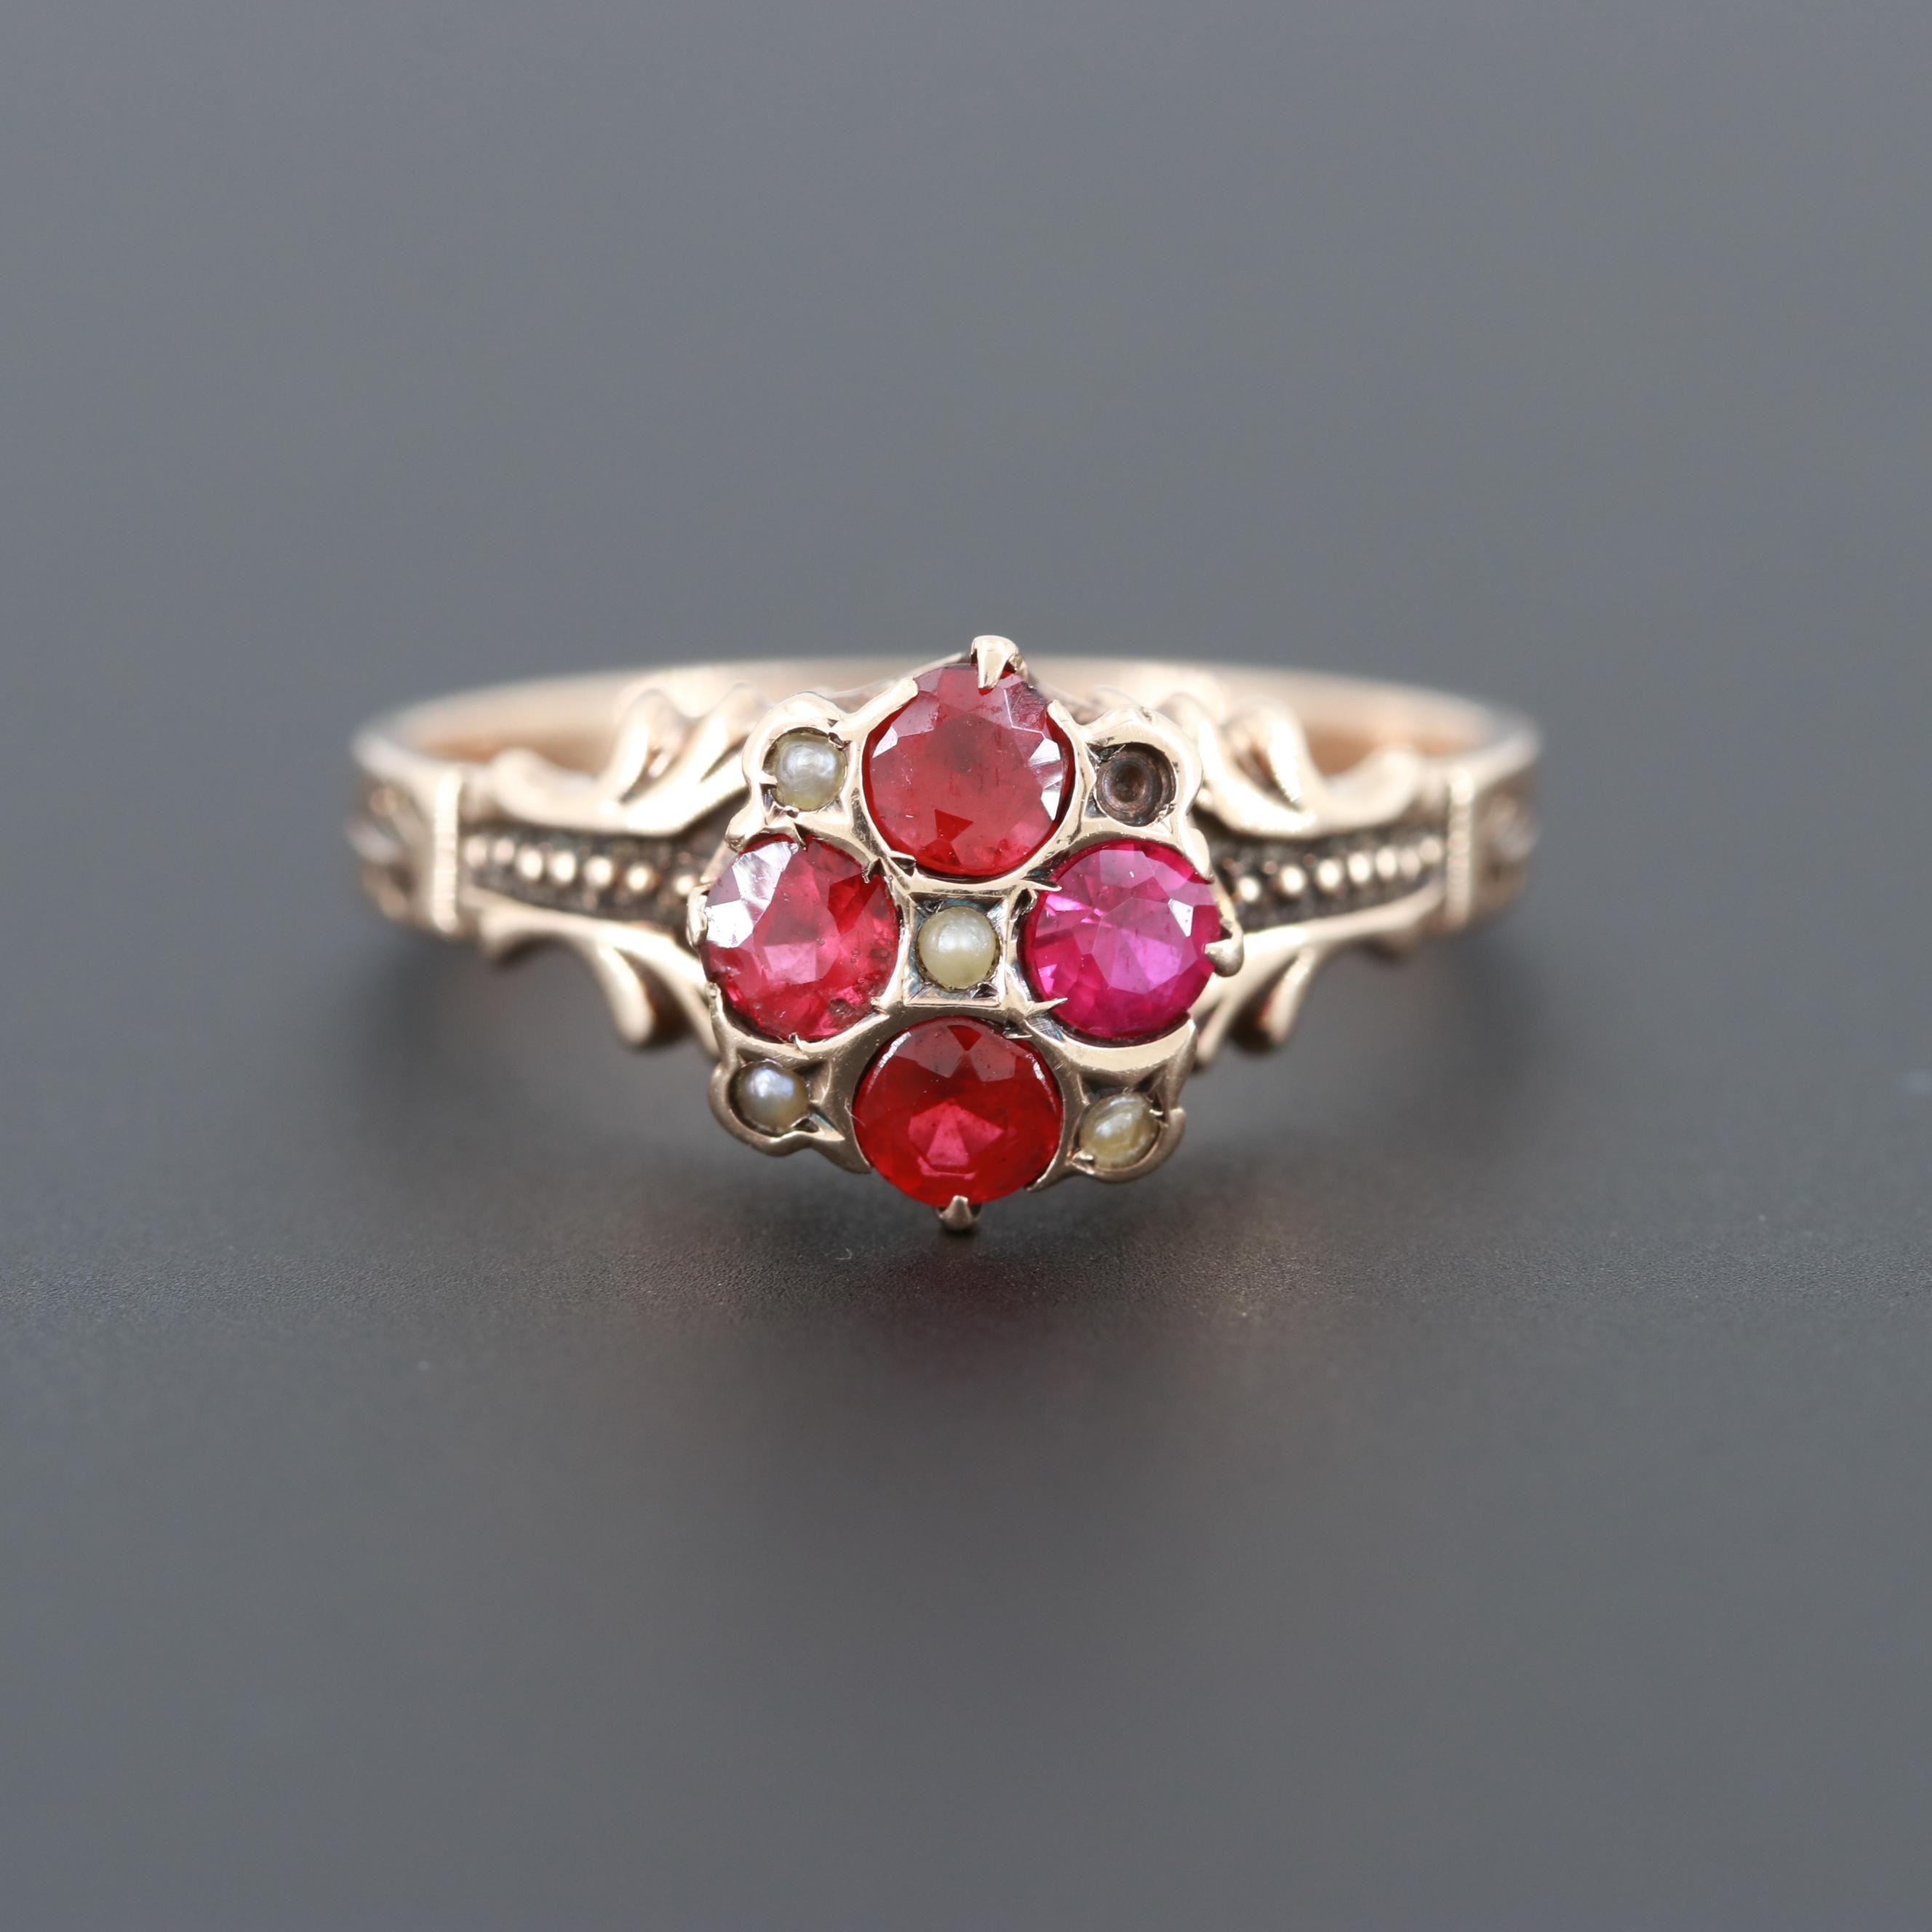 Victorian 10K Yellow Gold Ruby, Glass Garnet Doublet and Cultured Pearl Ring